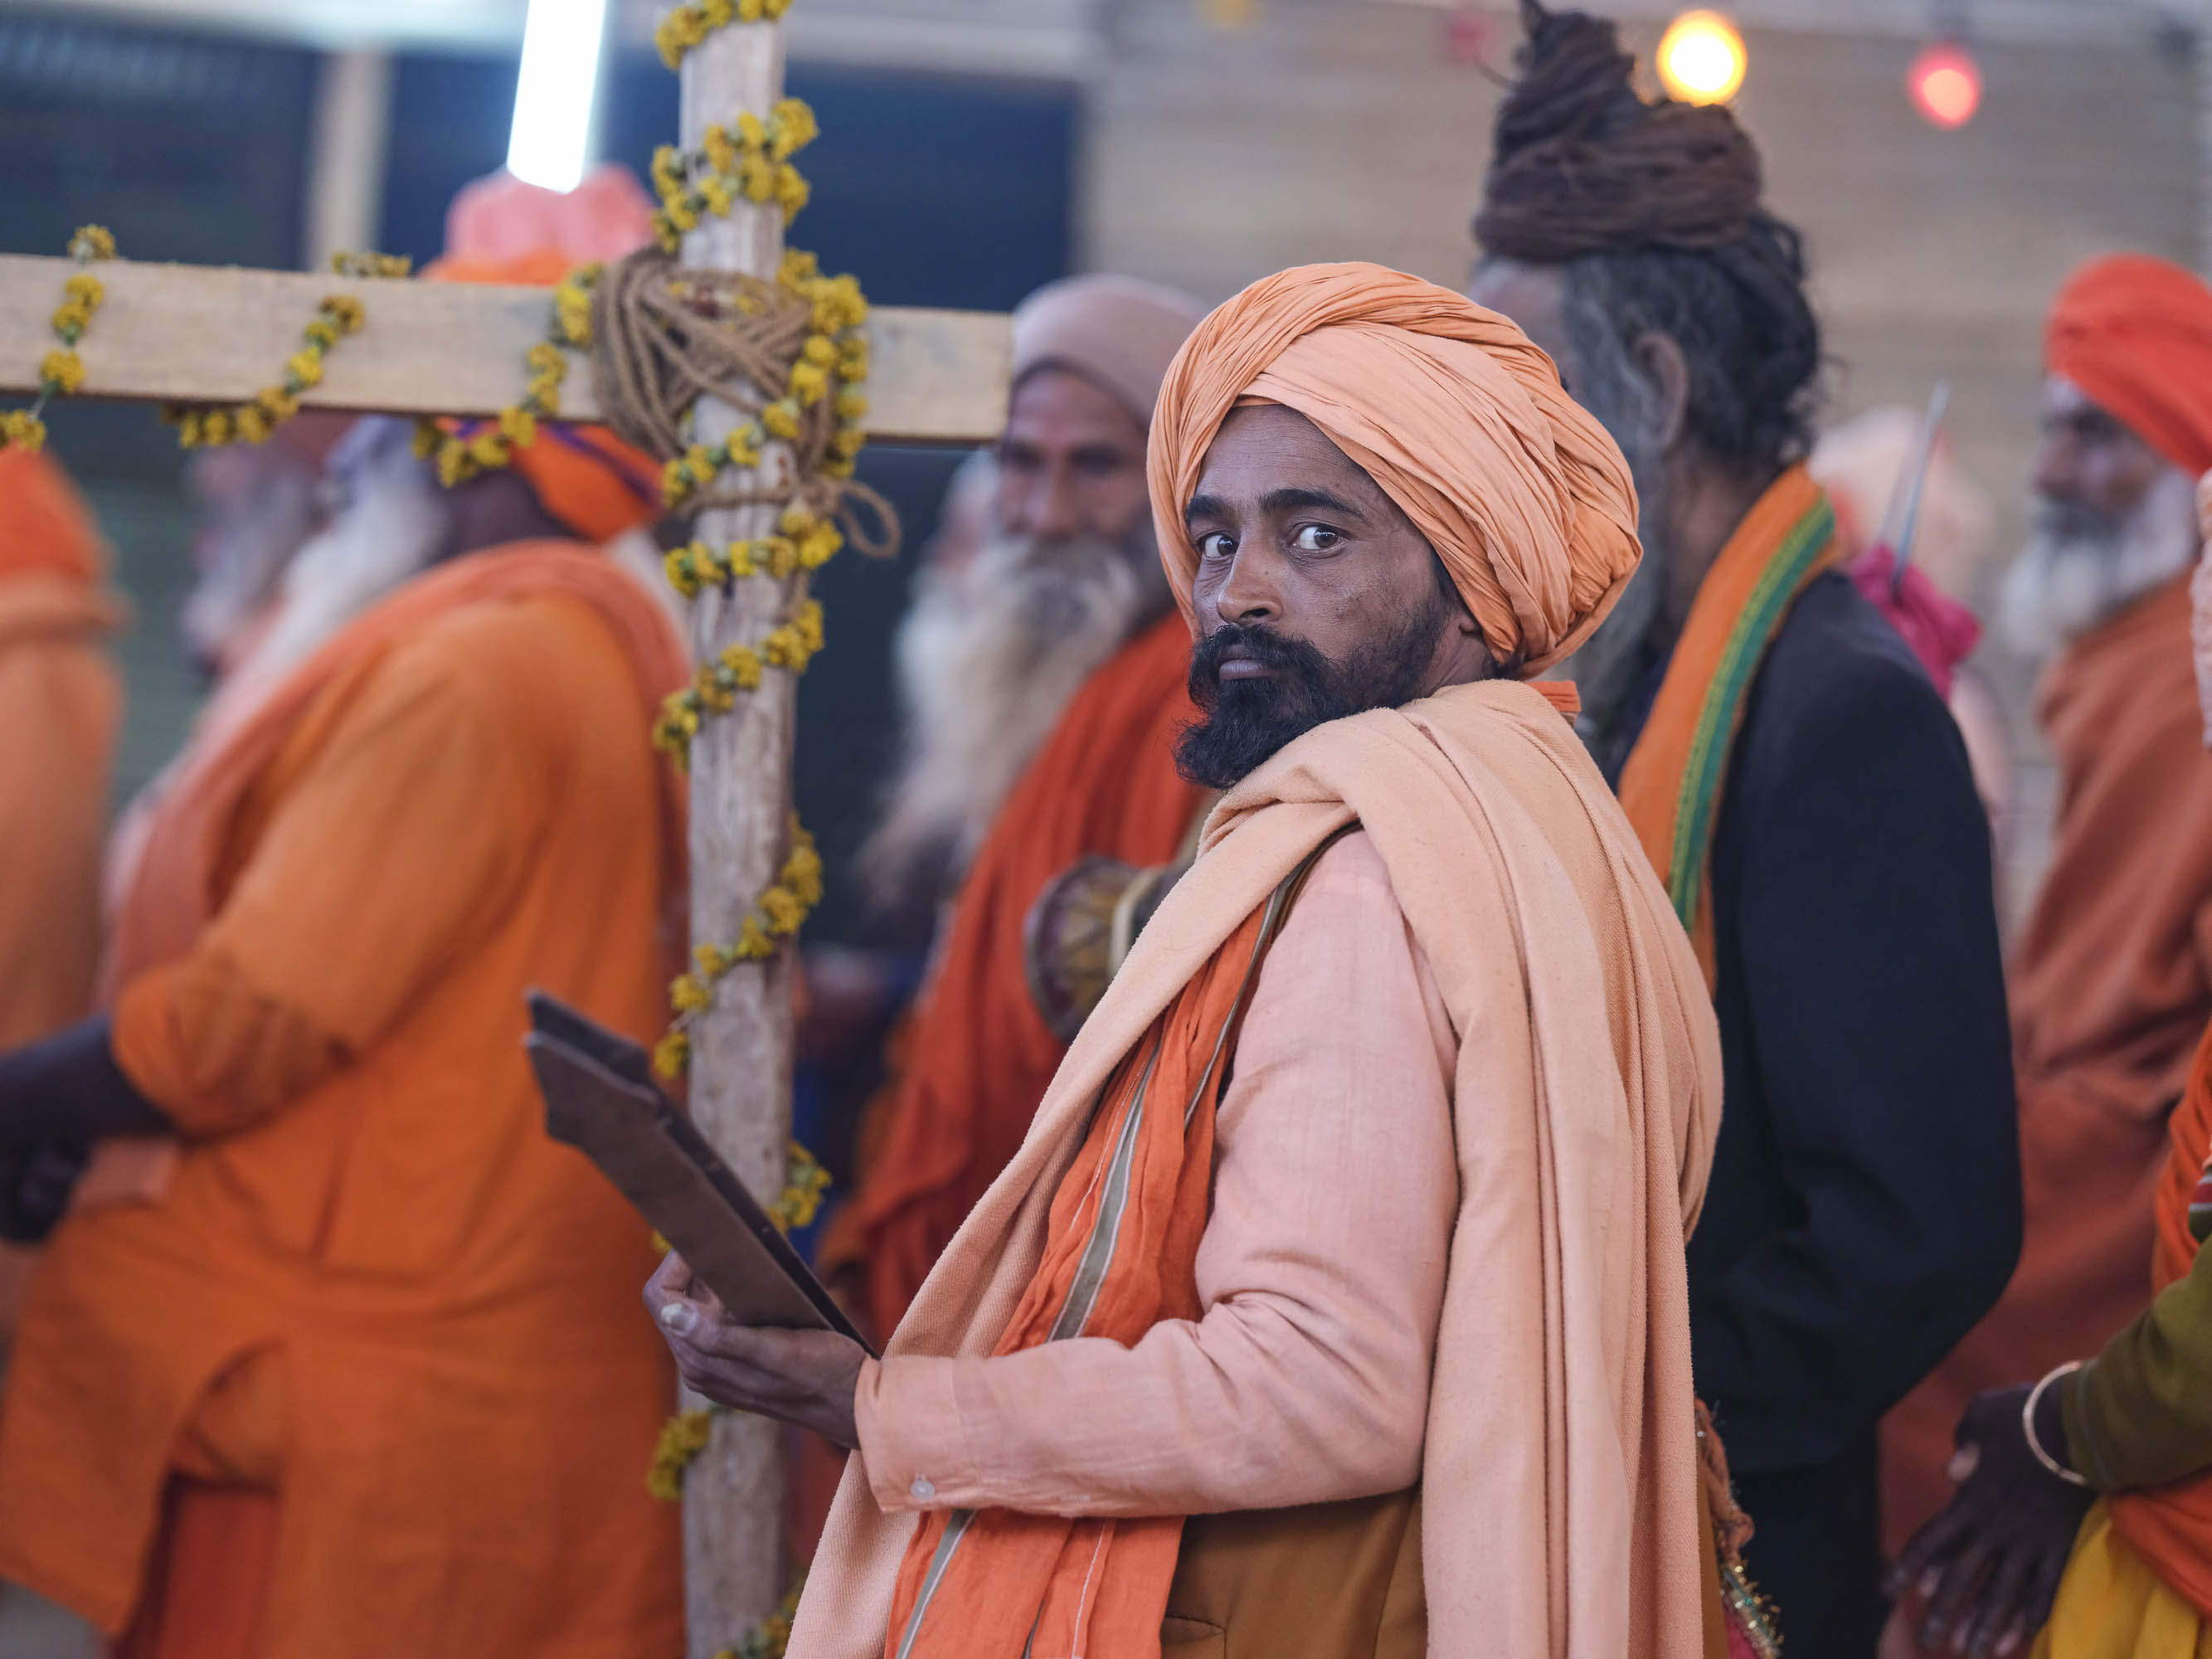 music musicien playing pilgrims Kumbh mela 2019 India Allahabad Prayagraj Ardh hindu religious Festival event rivers photographer jose jeuland photography